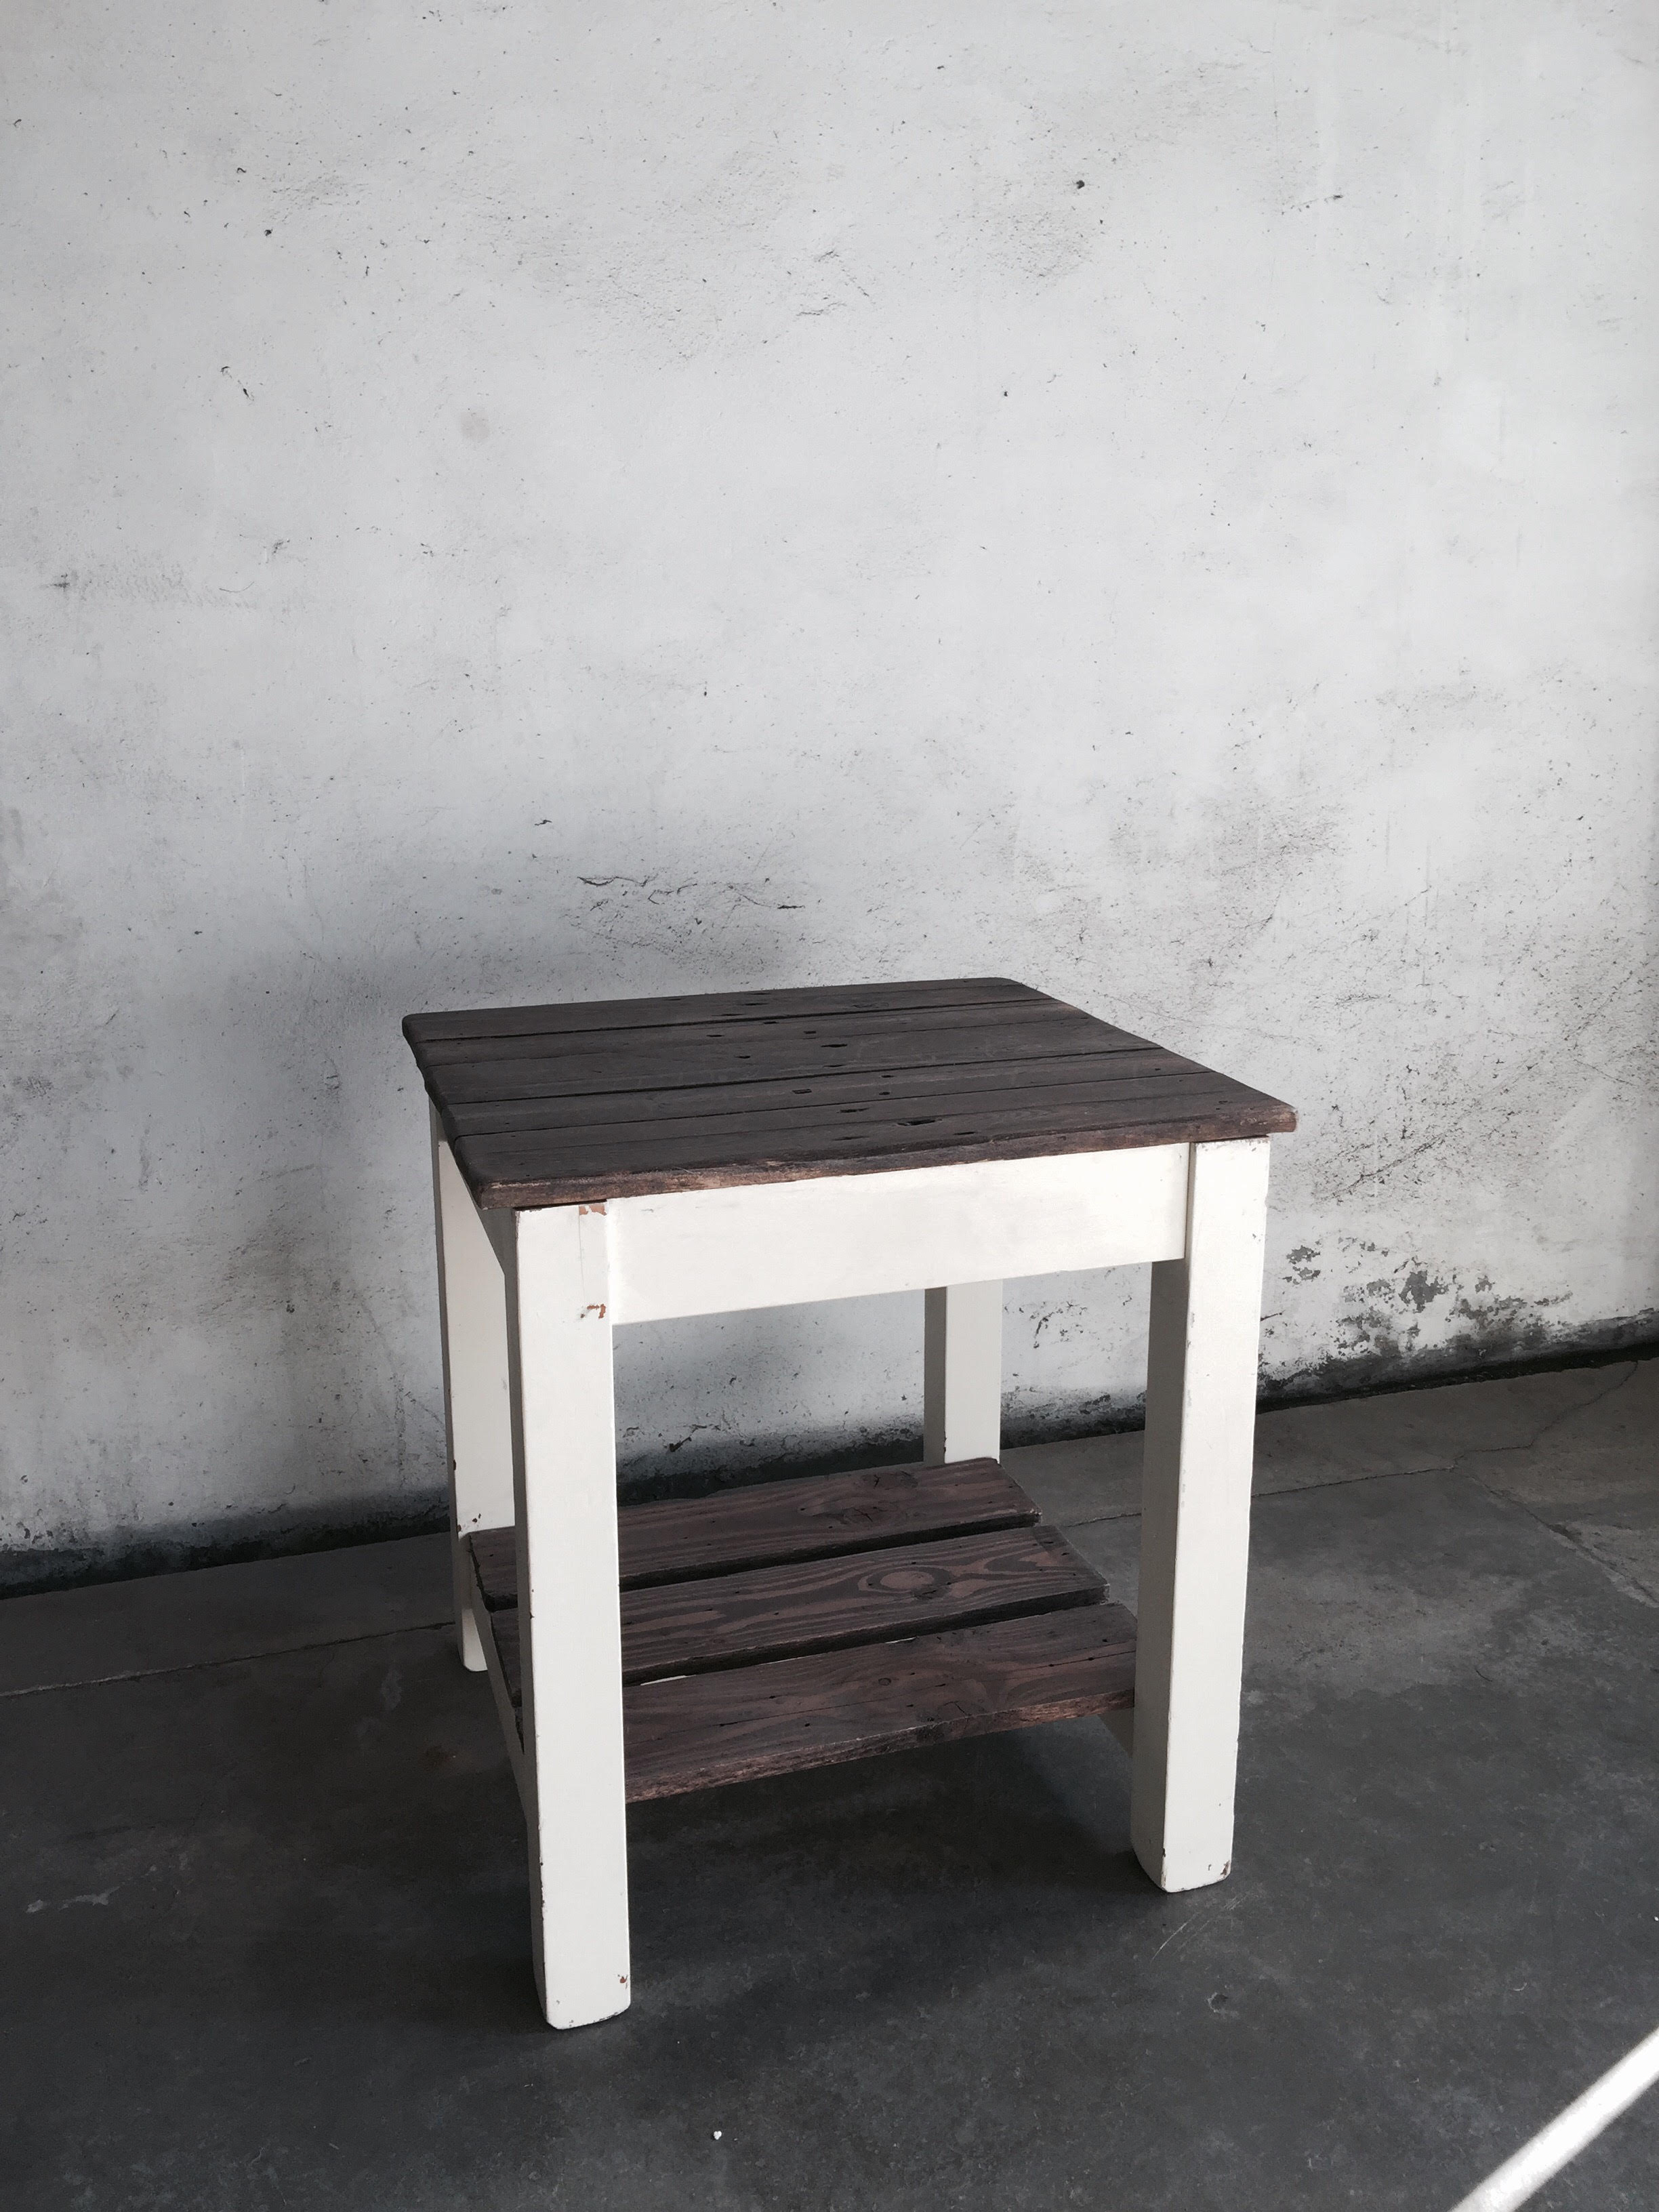 Small Side Table 4 (no code) £.jpg